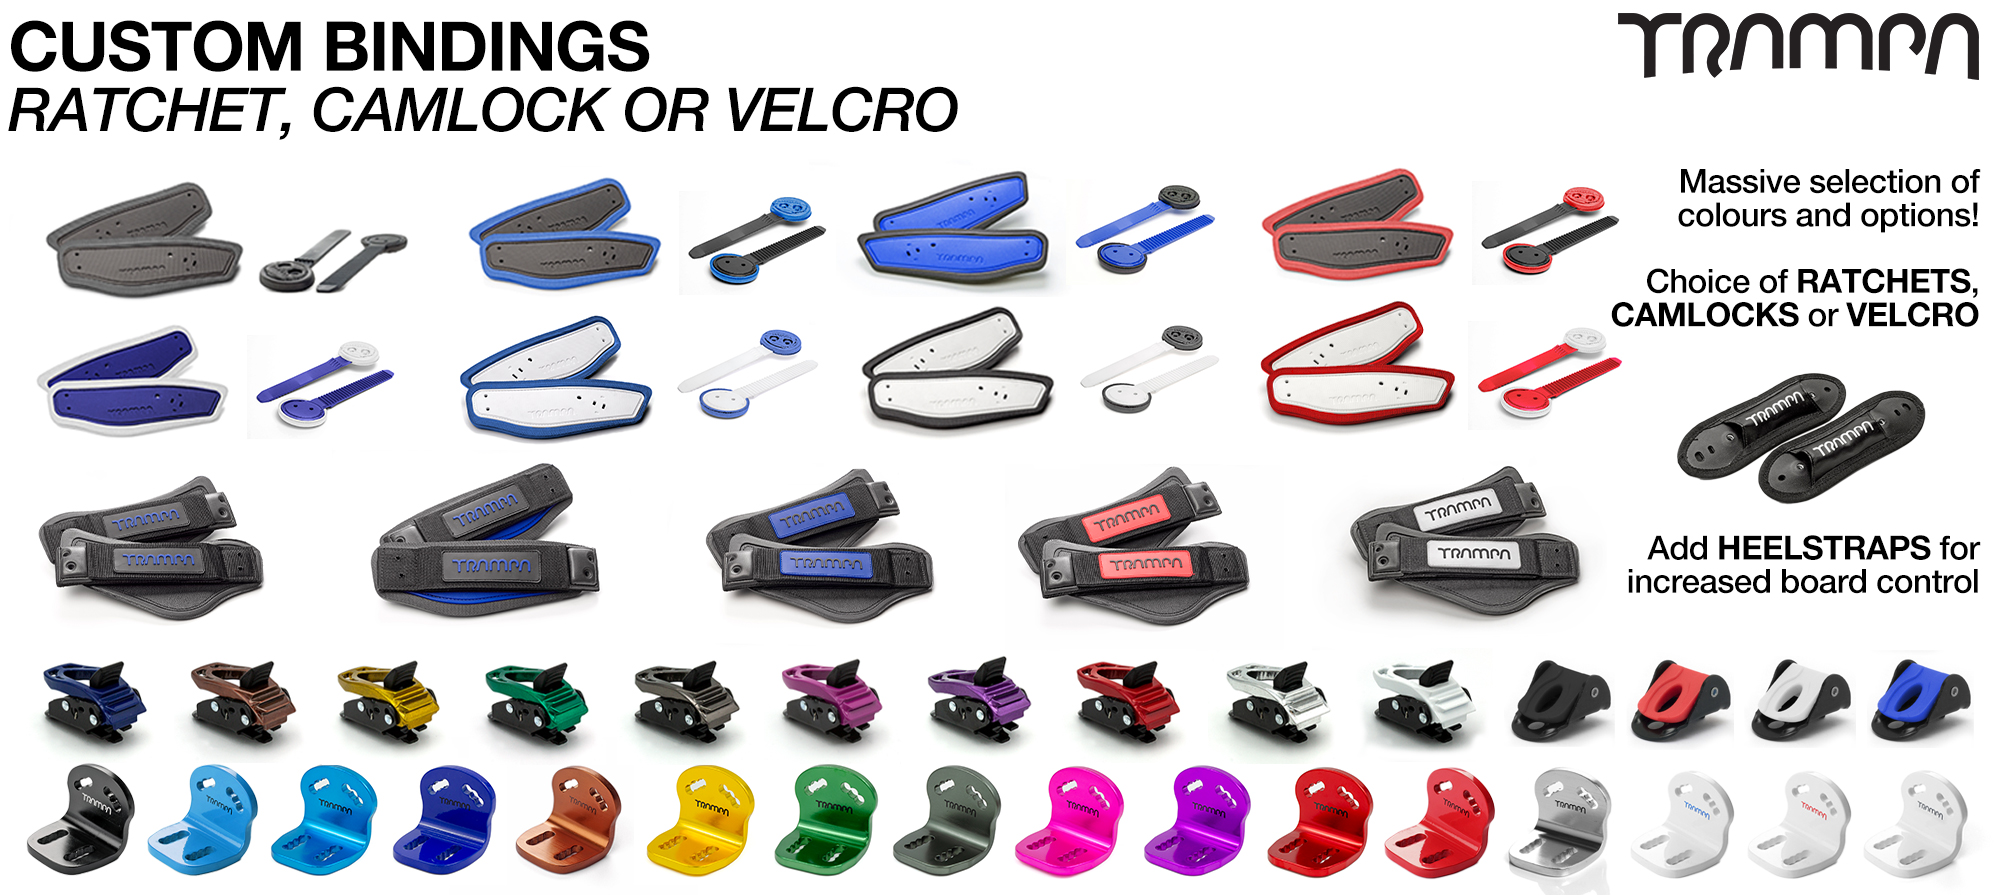 CUSTOM BINDINGS - Build your own Bindings & colour combo!